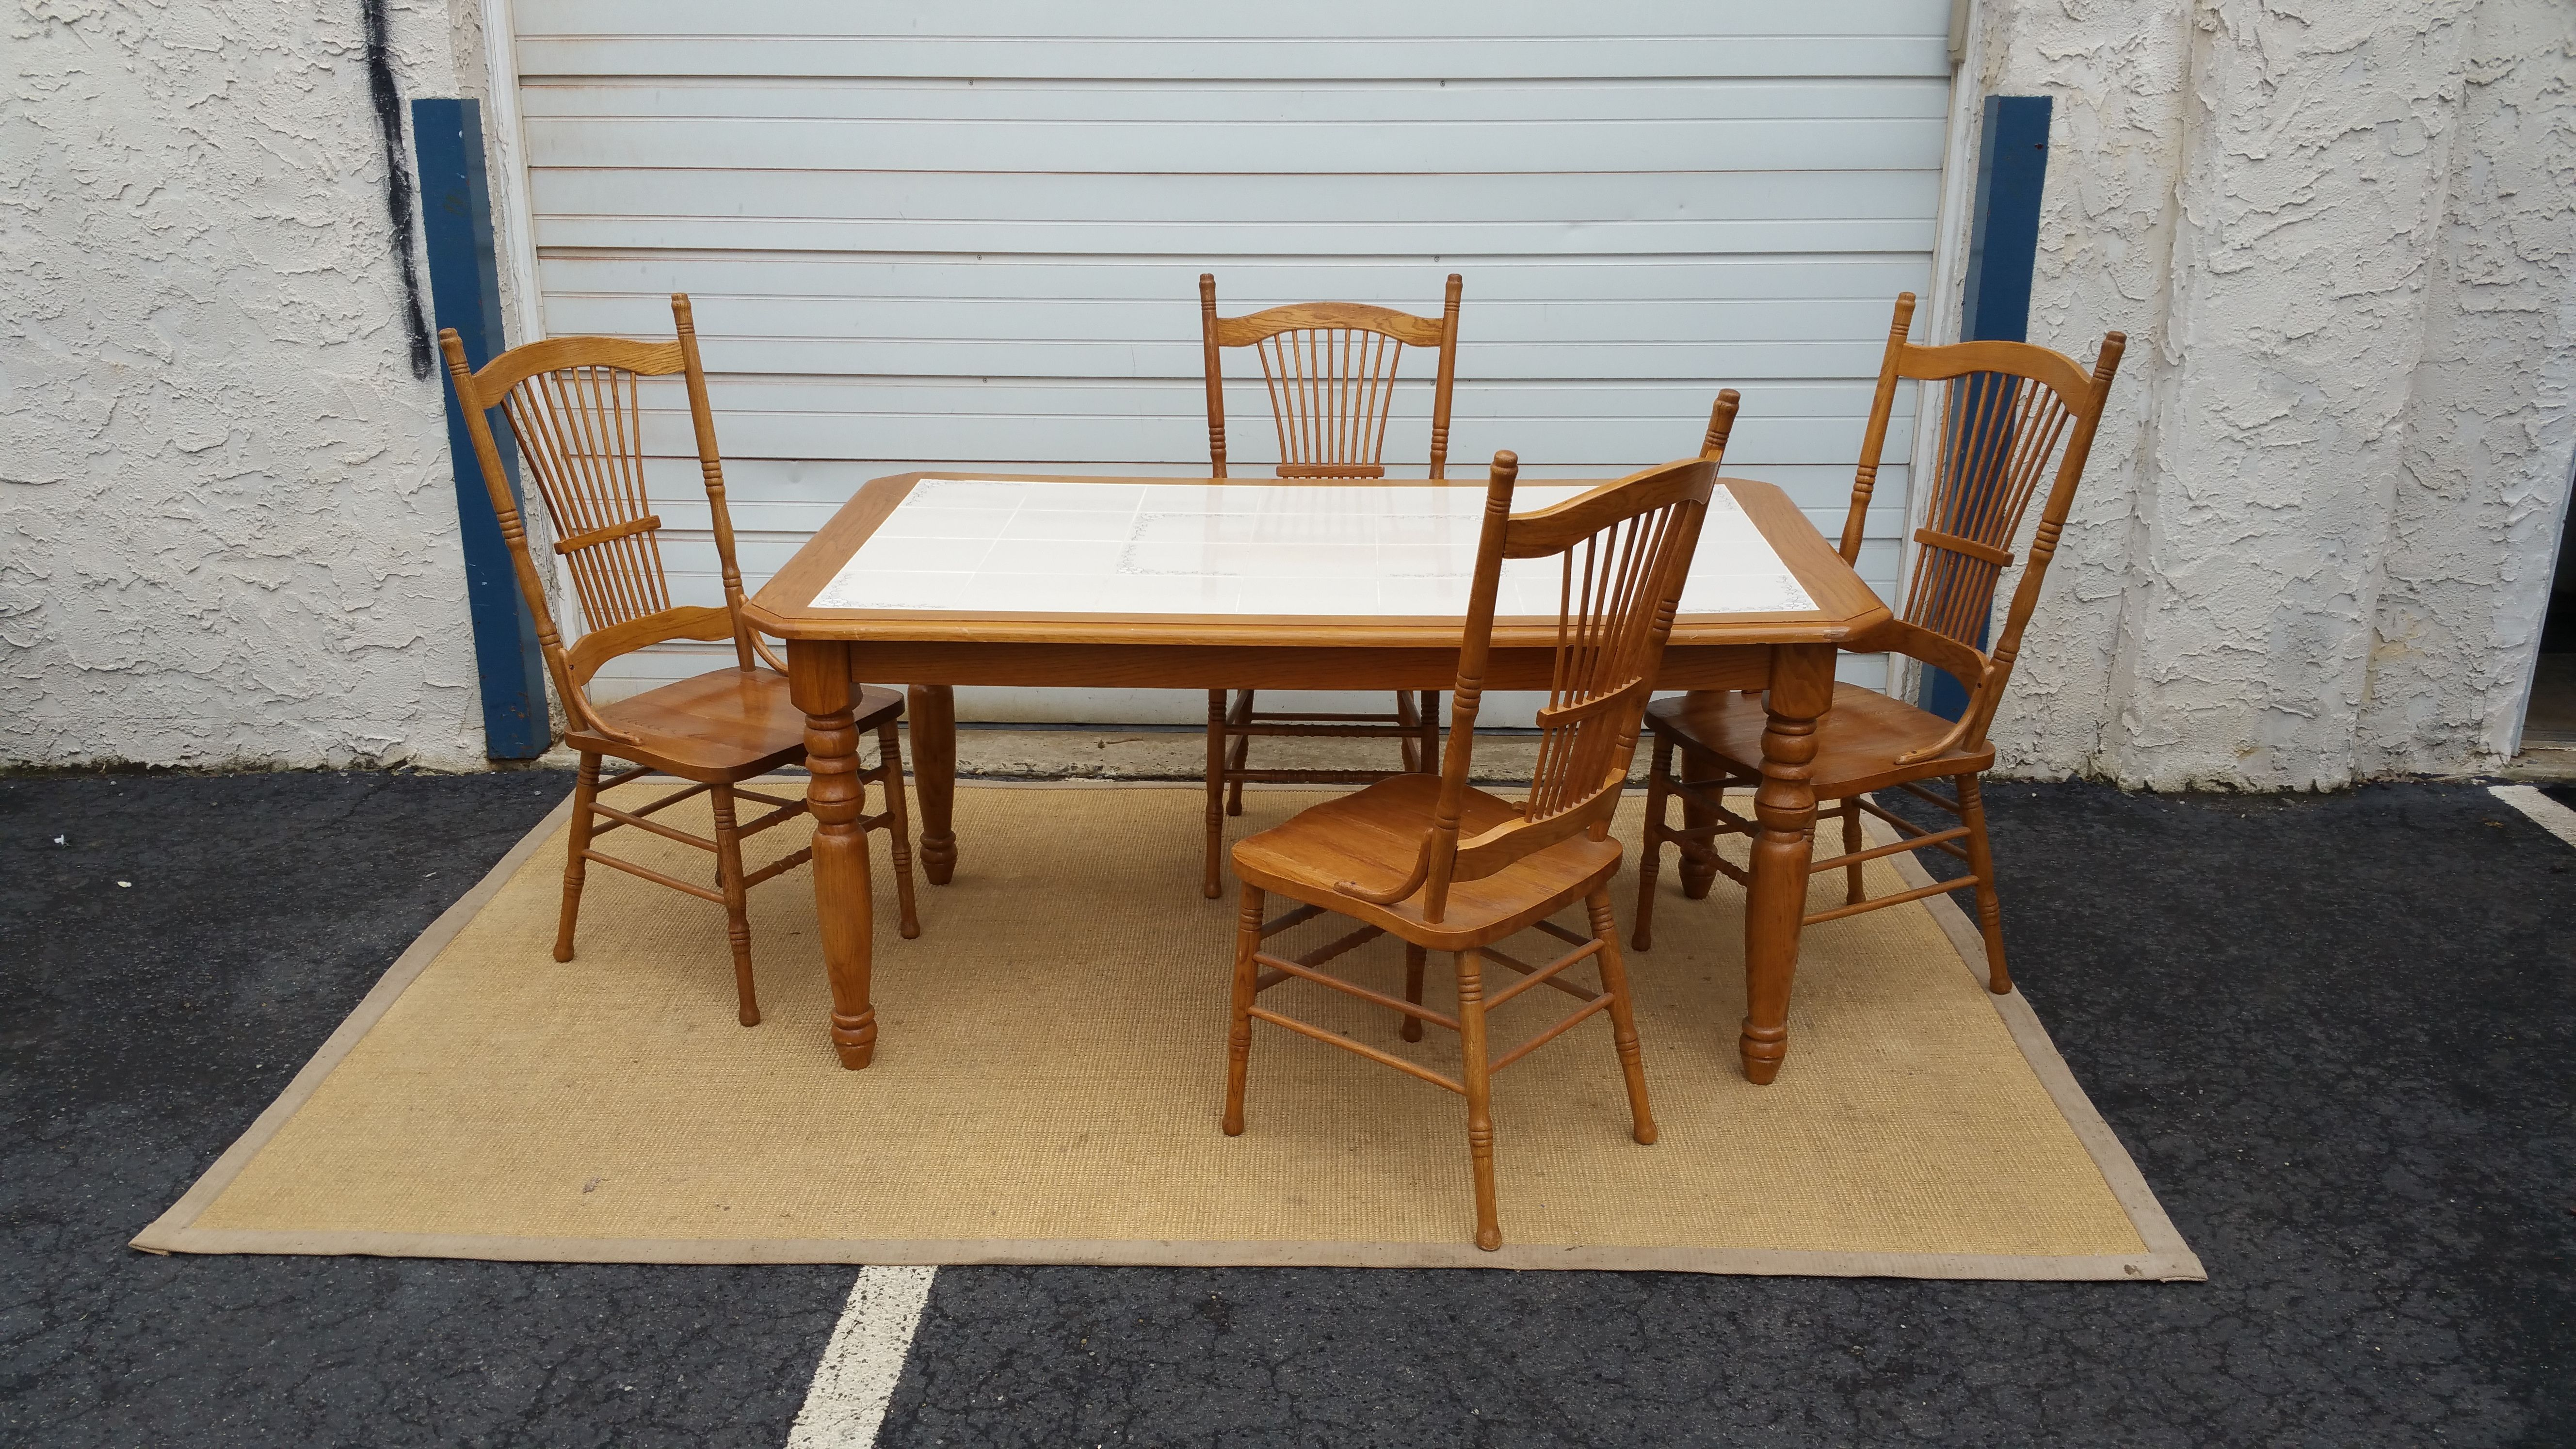 Tiled Kitch Table Set W 4 Chairs Outdoor Furniture Sets Shabby Chic Table And Chairs Wooden Dining Room Chairs